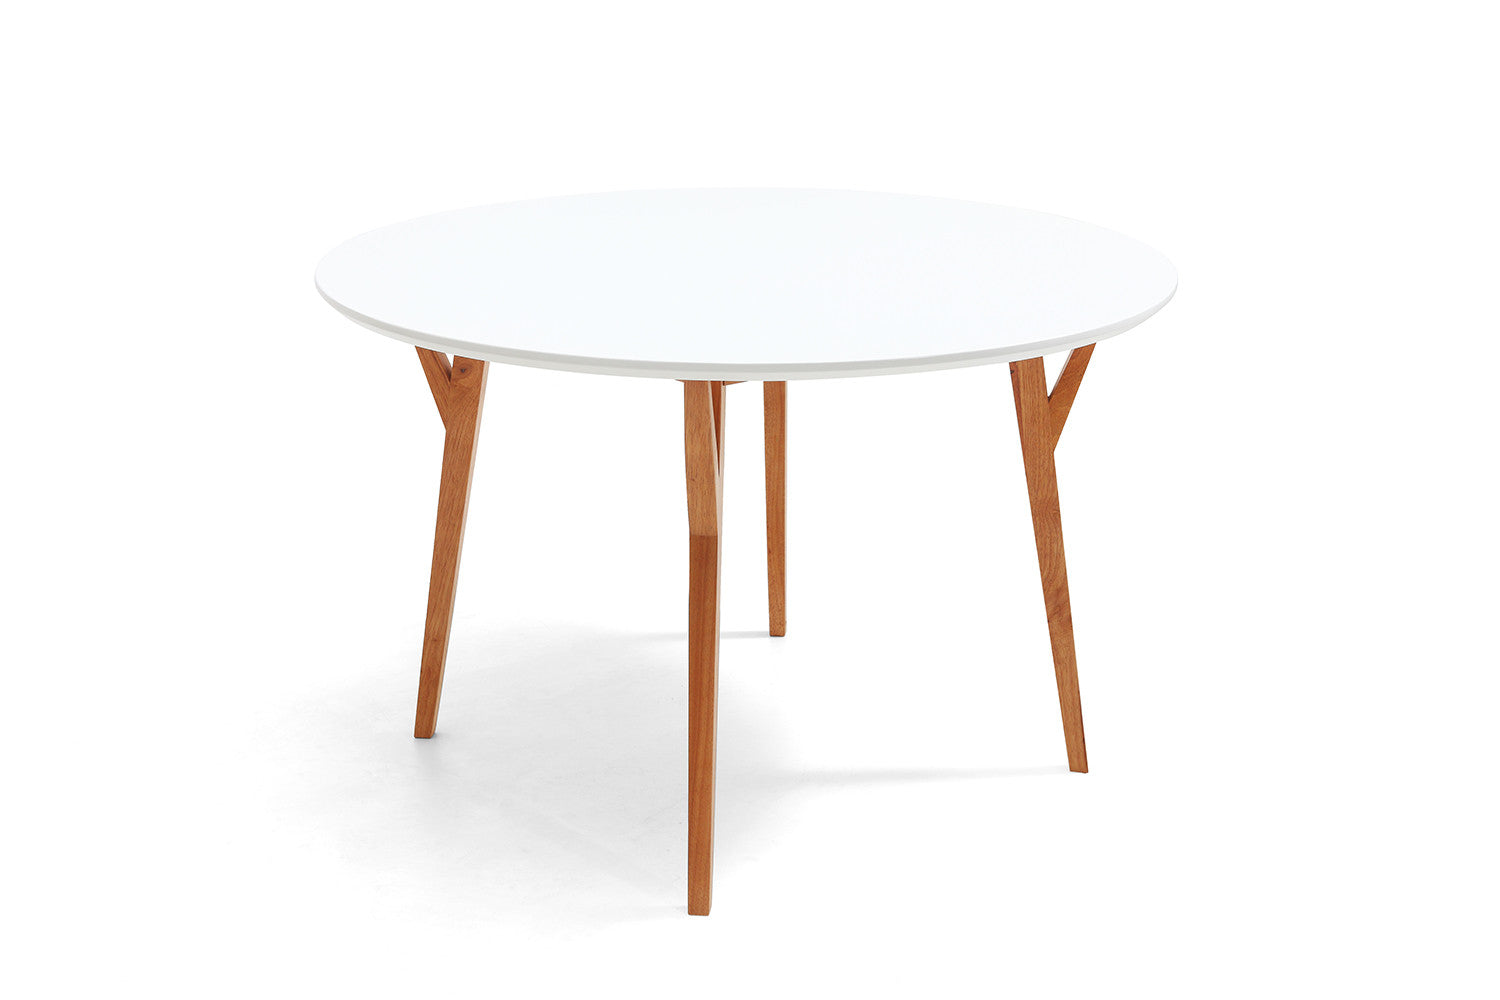 Table de salle manger ronde design scandinave moesa dewarens - Table salle a manger ronde design ...